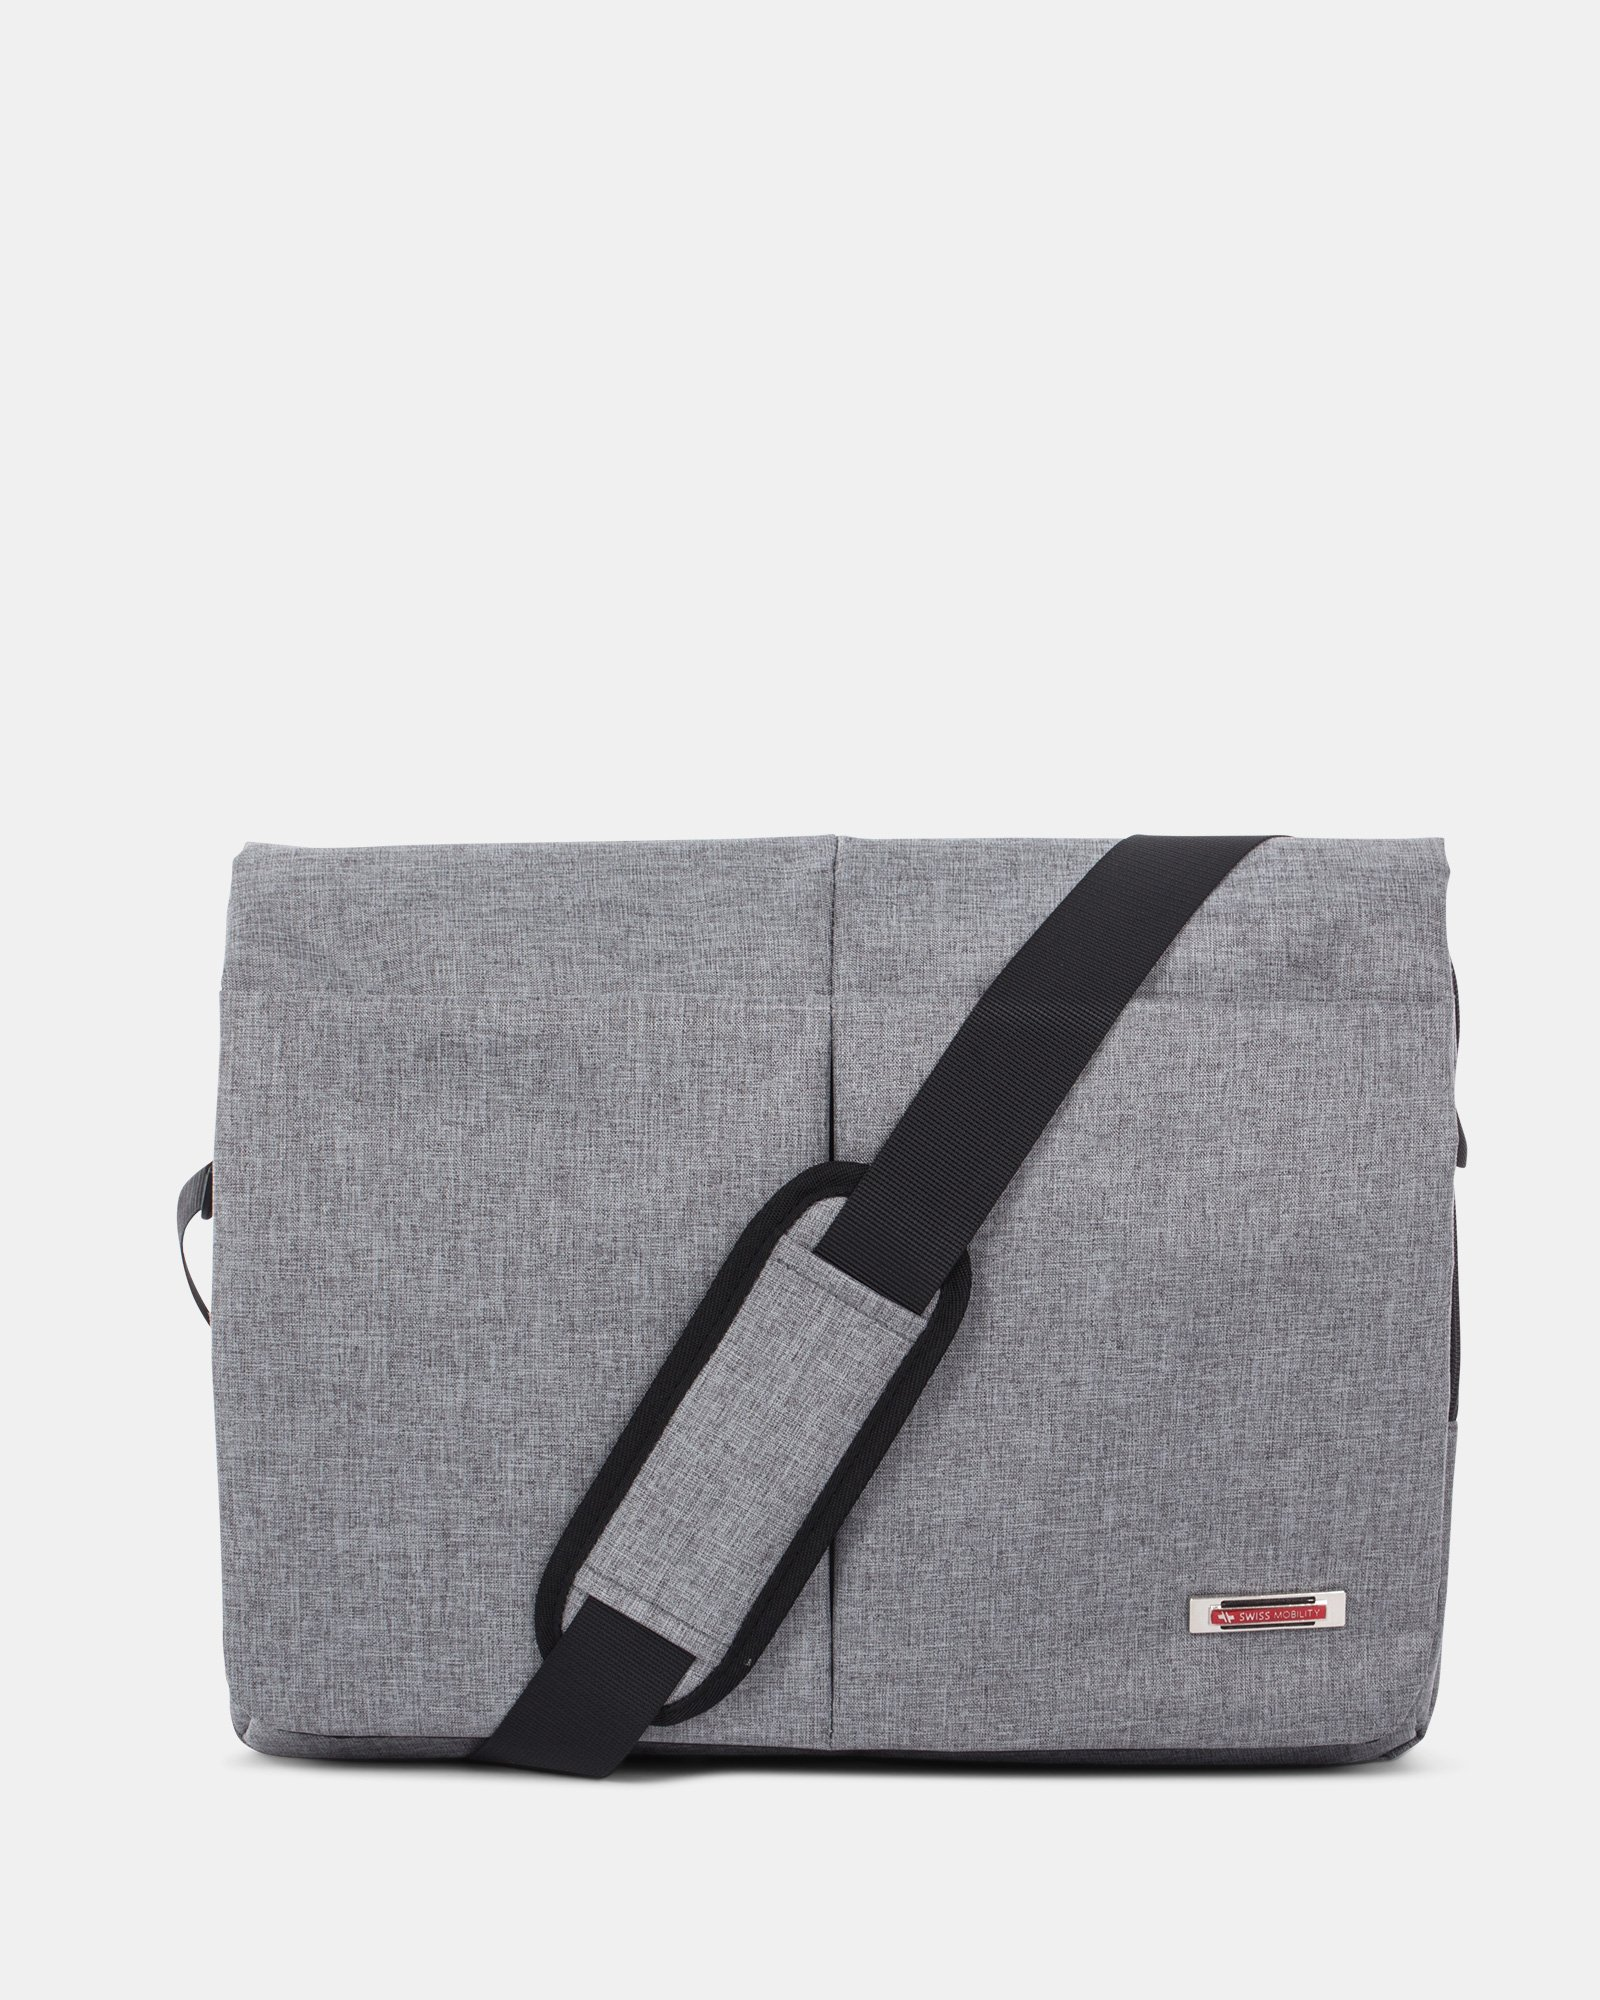 Sterling-Messenger Bag - Swiss Mobility - Zoom